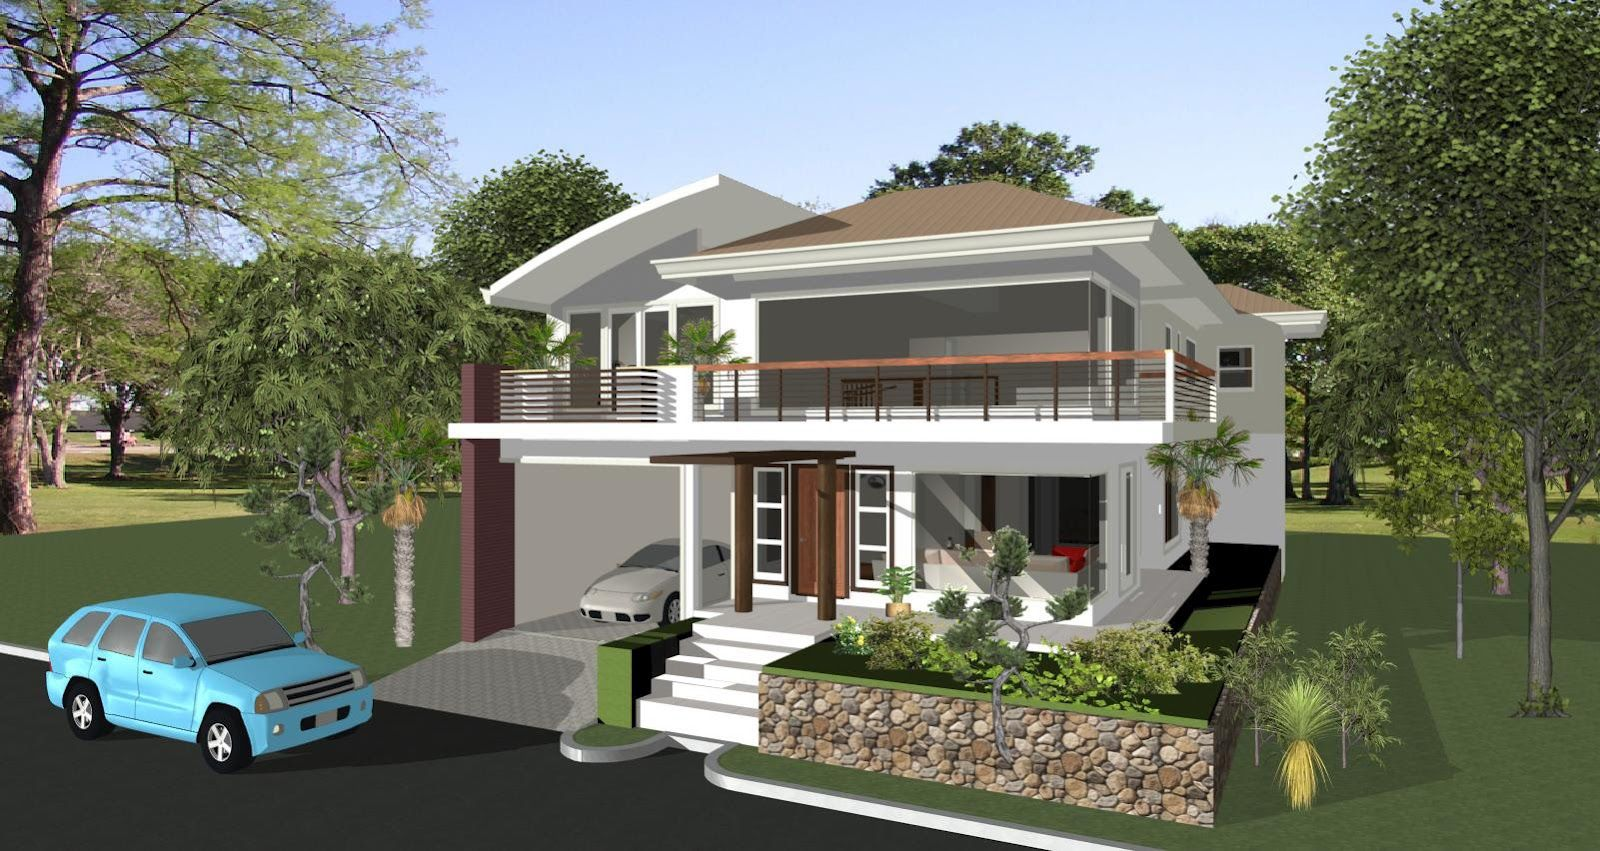 Dream home designs erecre group realty design and Dream designer homes